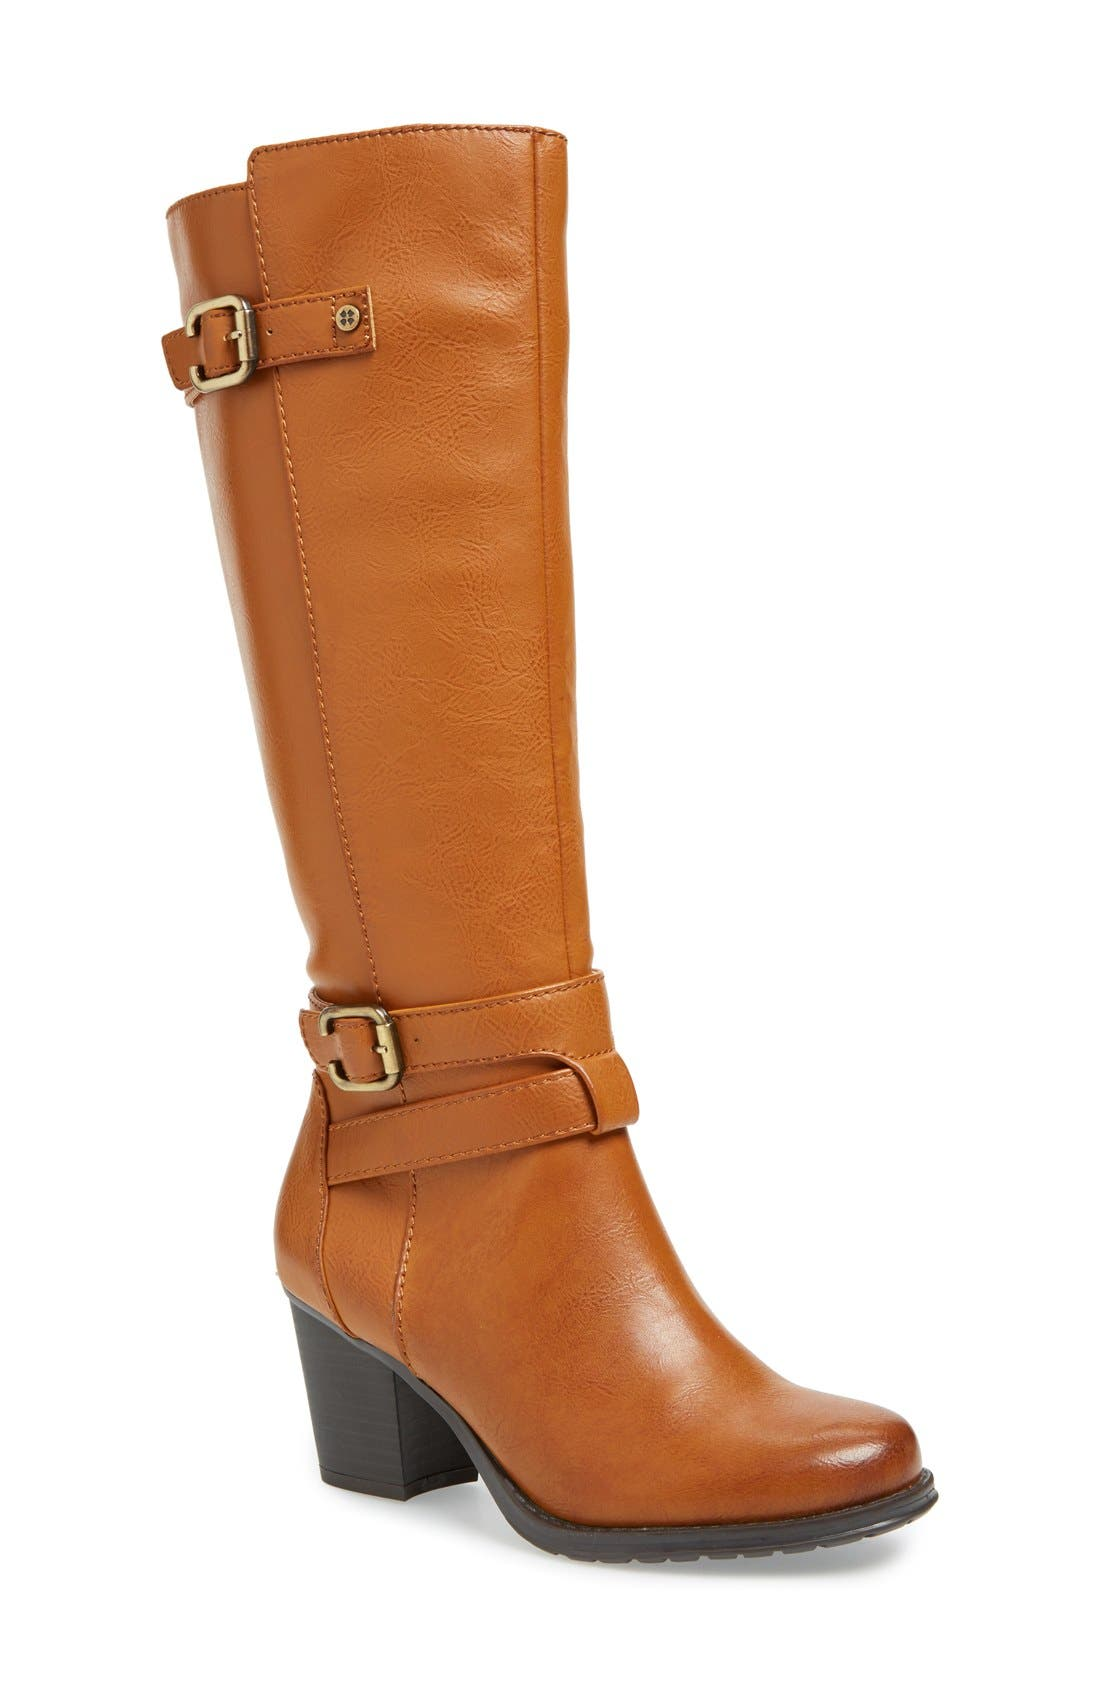 Main Image - Naturalizer 'Tricia' Tall Boot (Women)